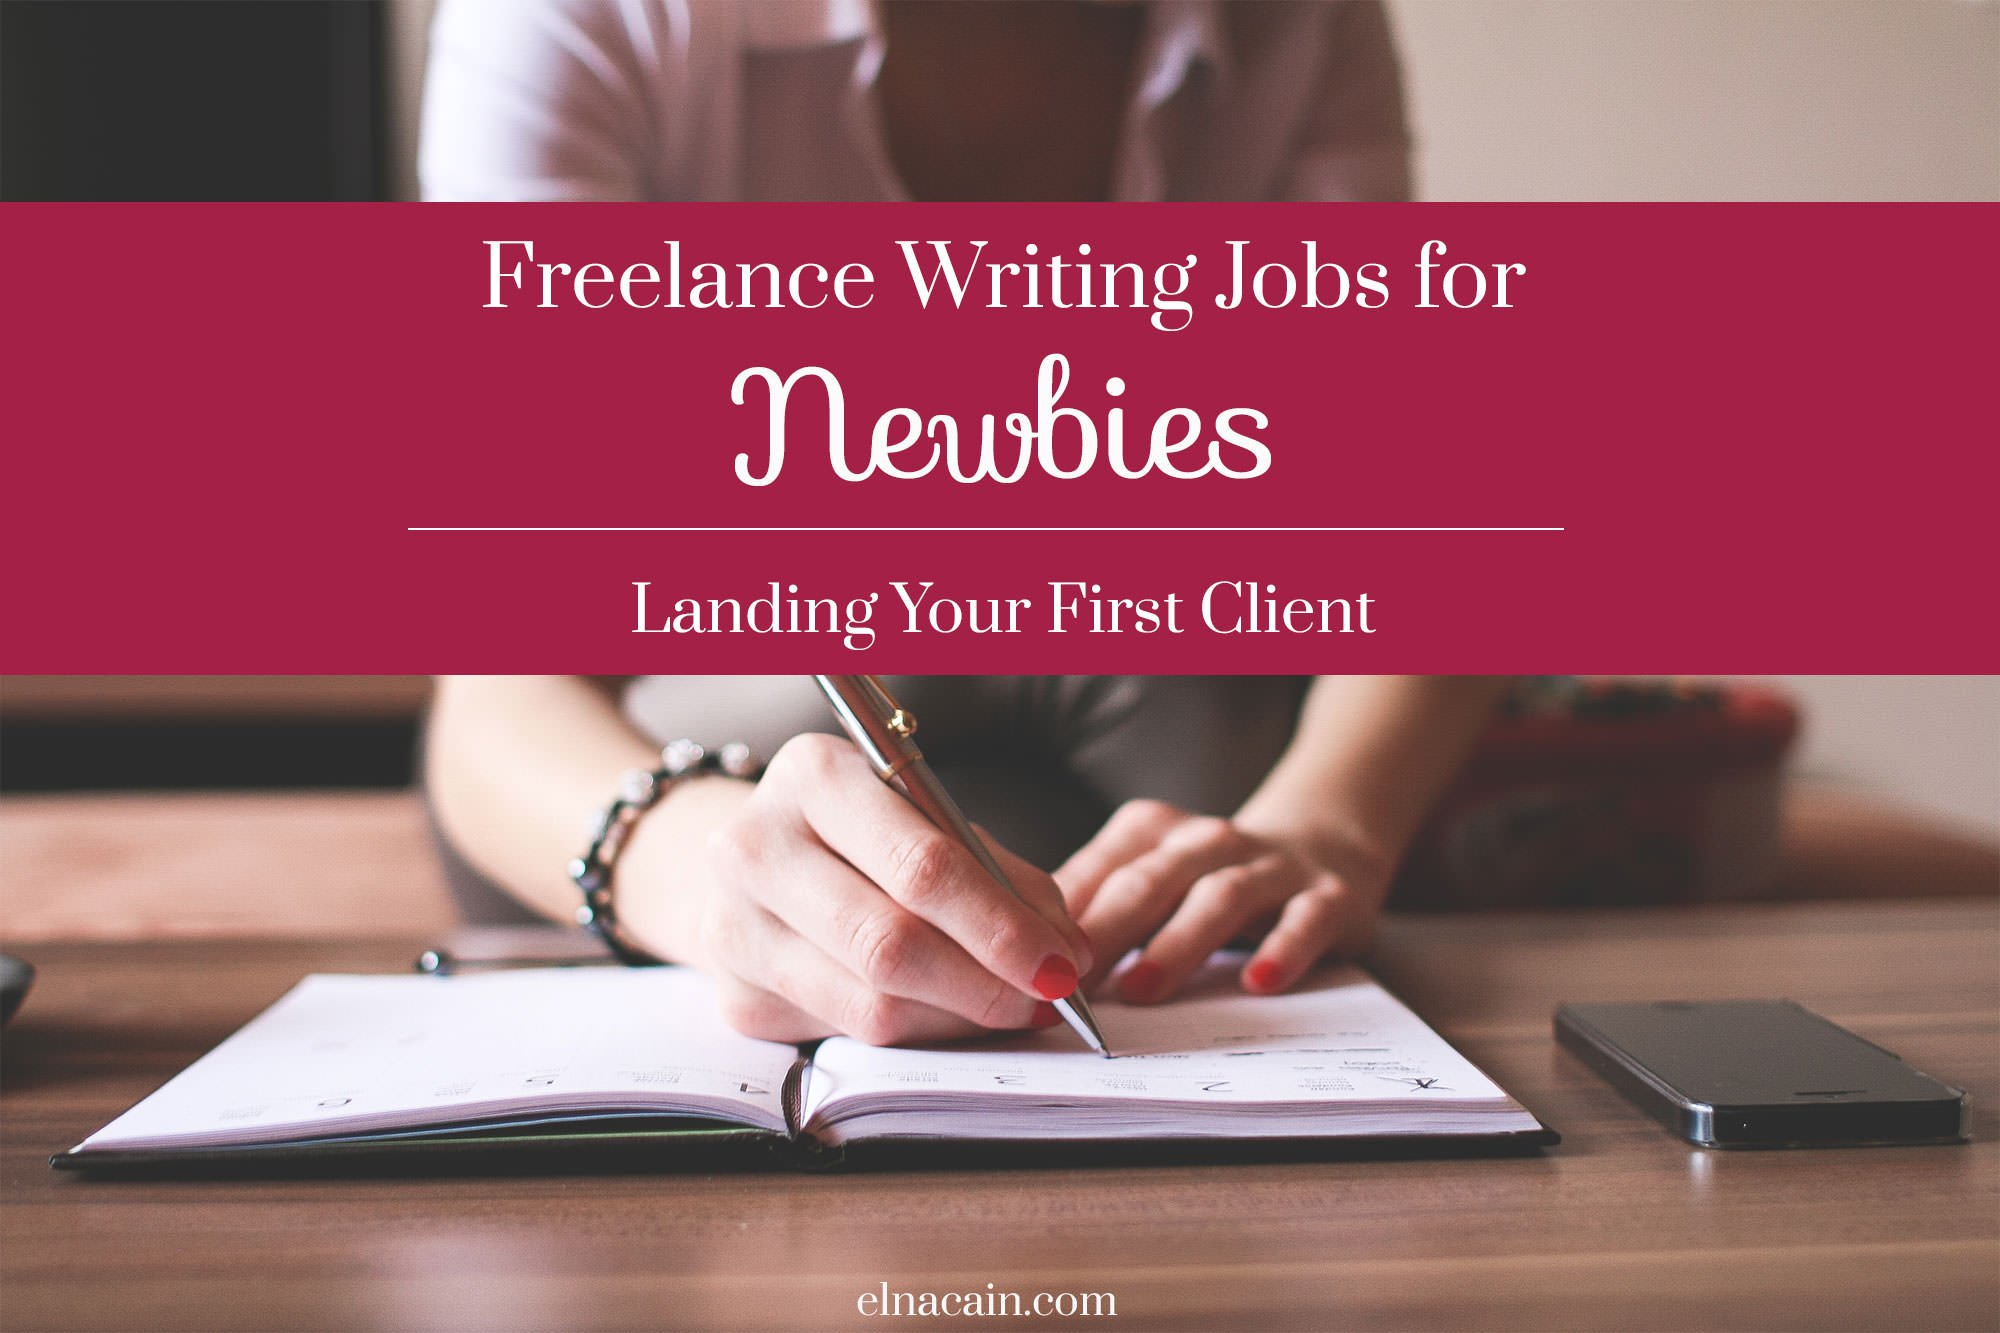 What Do You Need to Be a Freelance Writer?